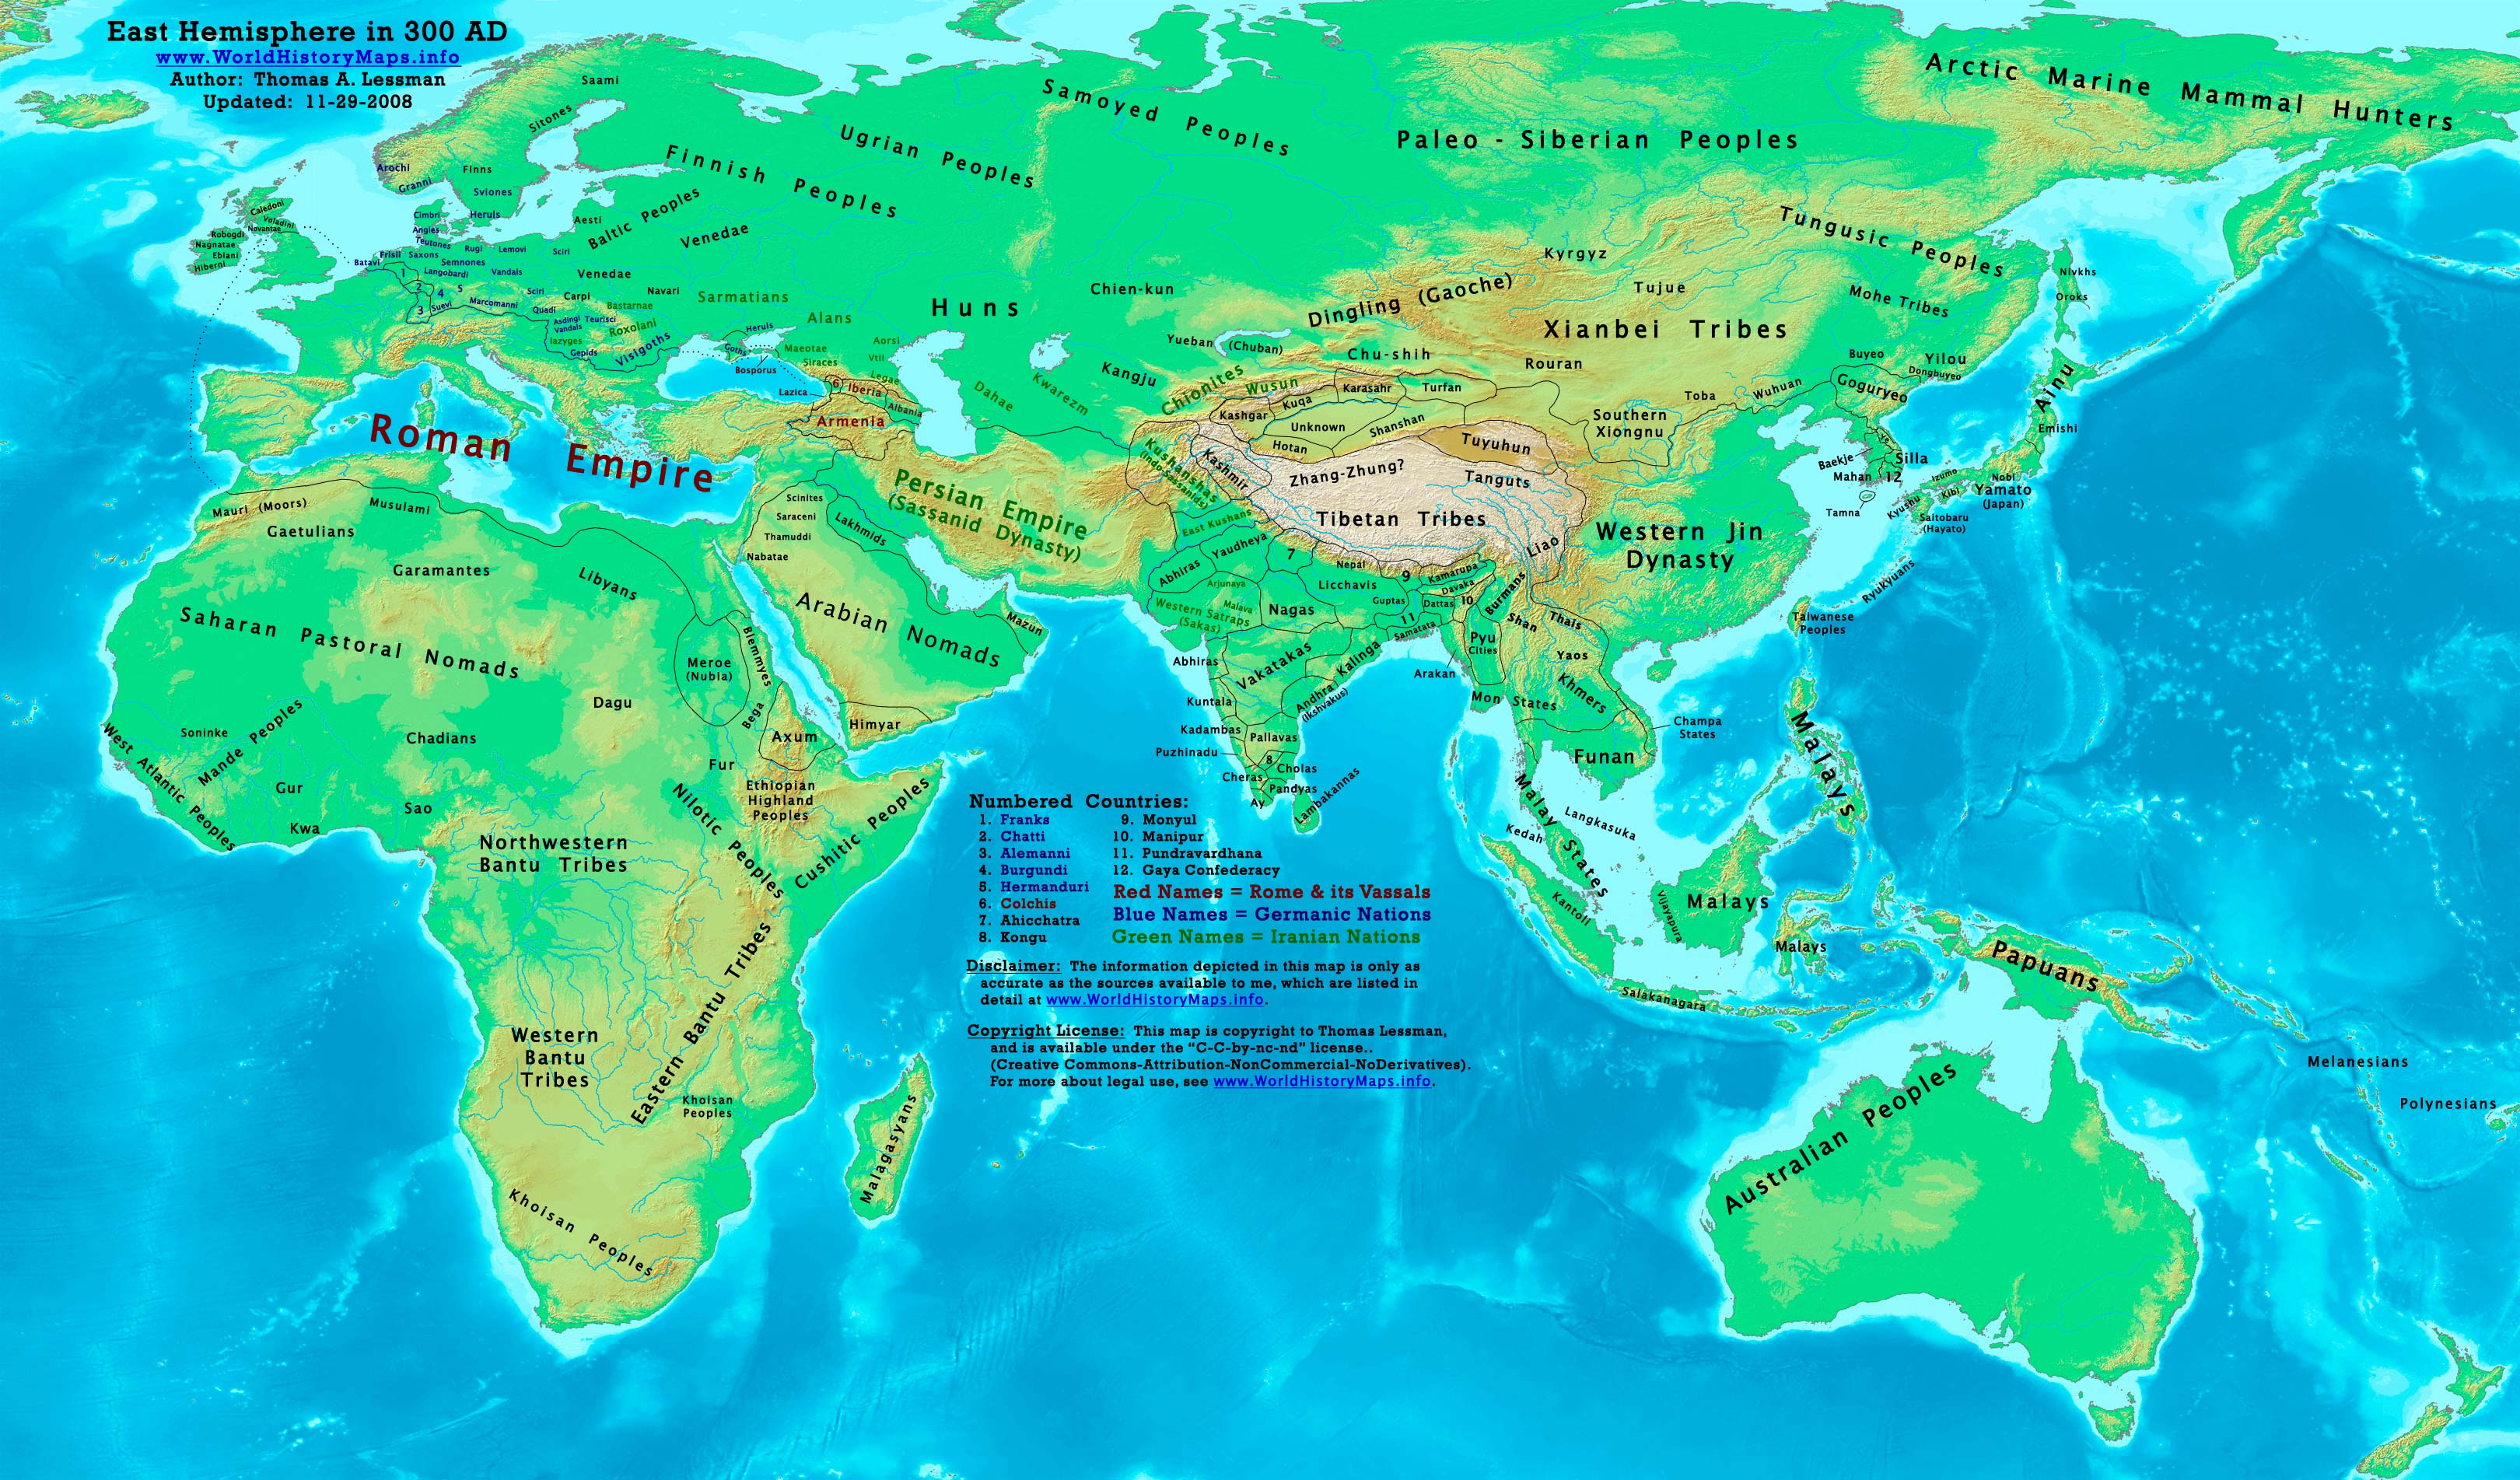 World history maps by thomas lessman 270 ad 300 ad gumiabroncs Gallery